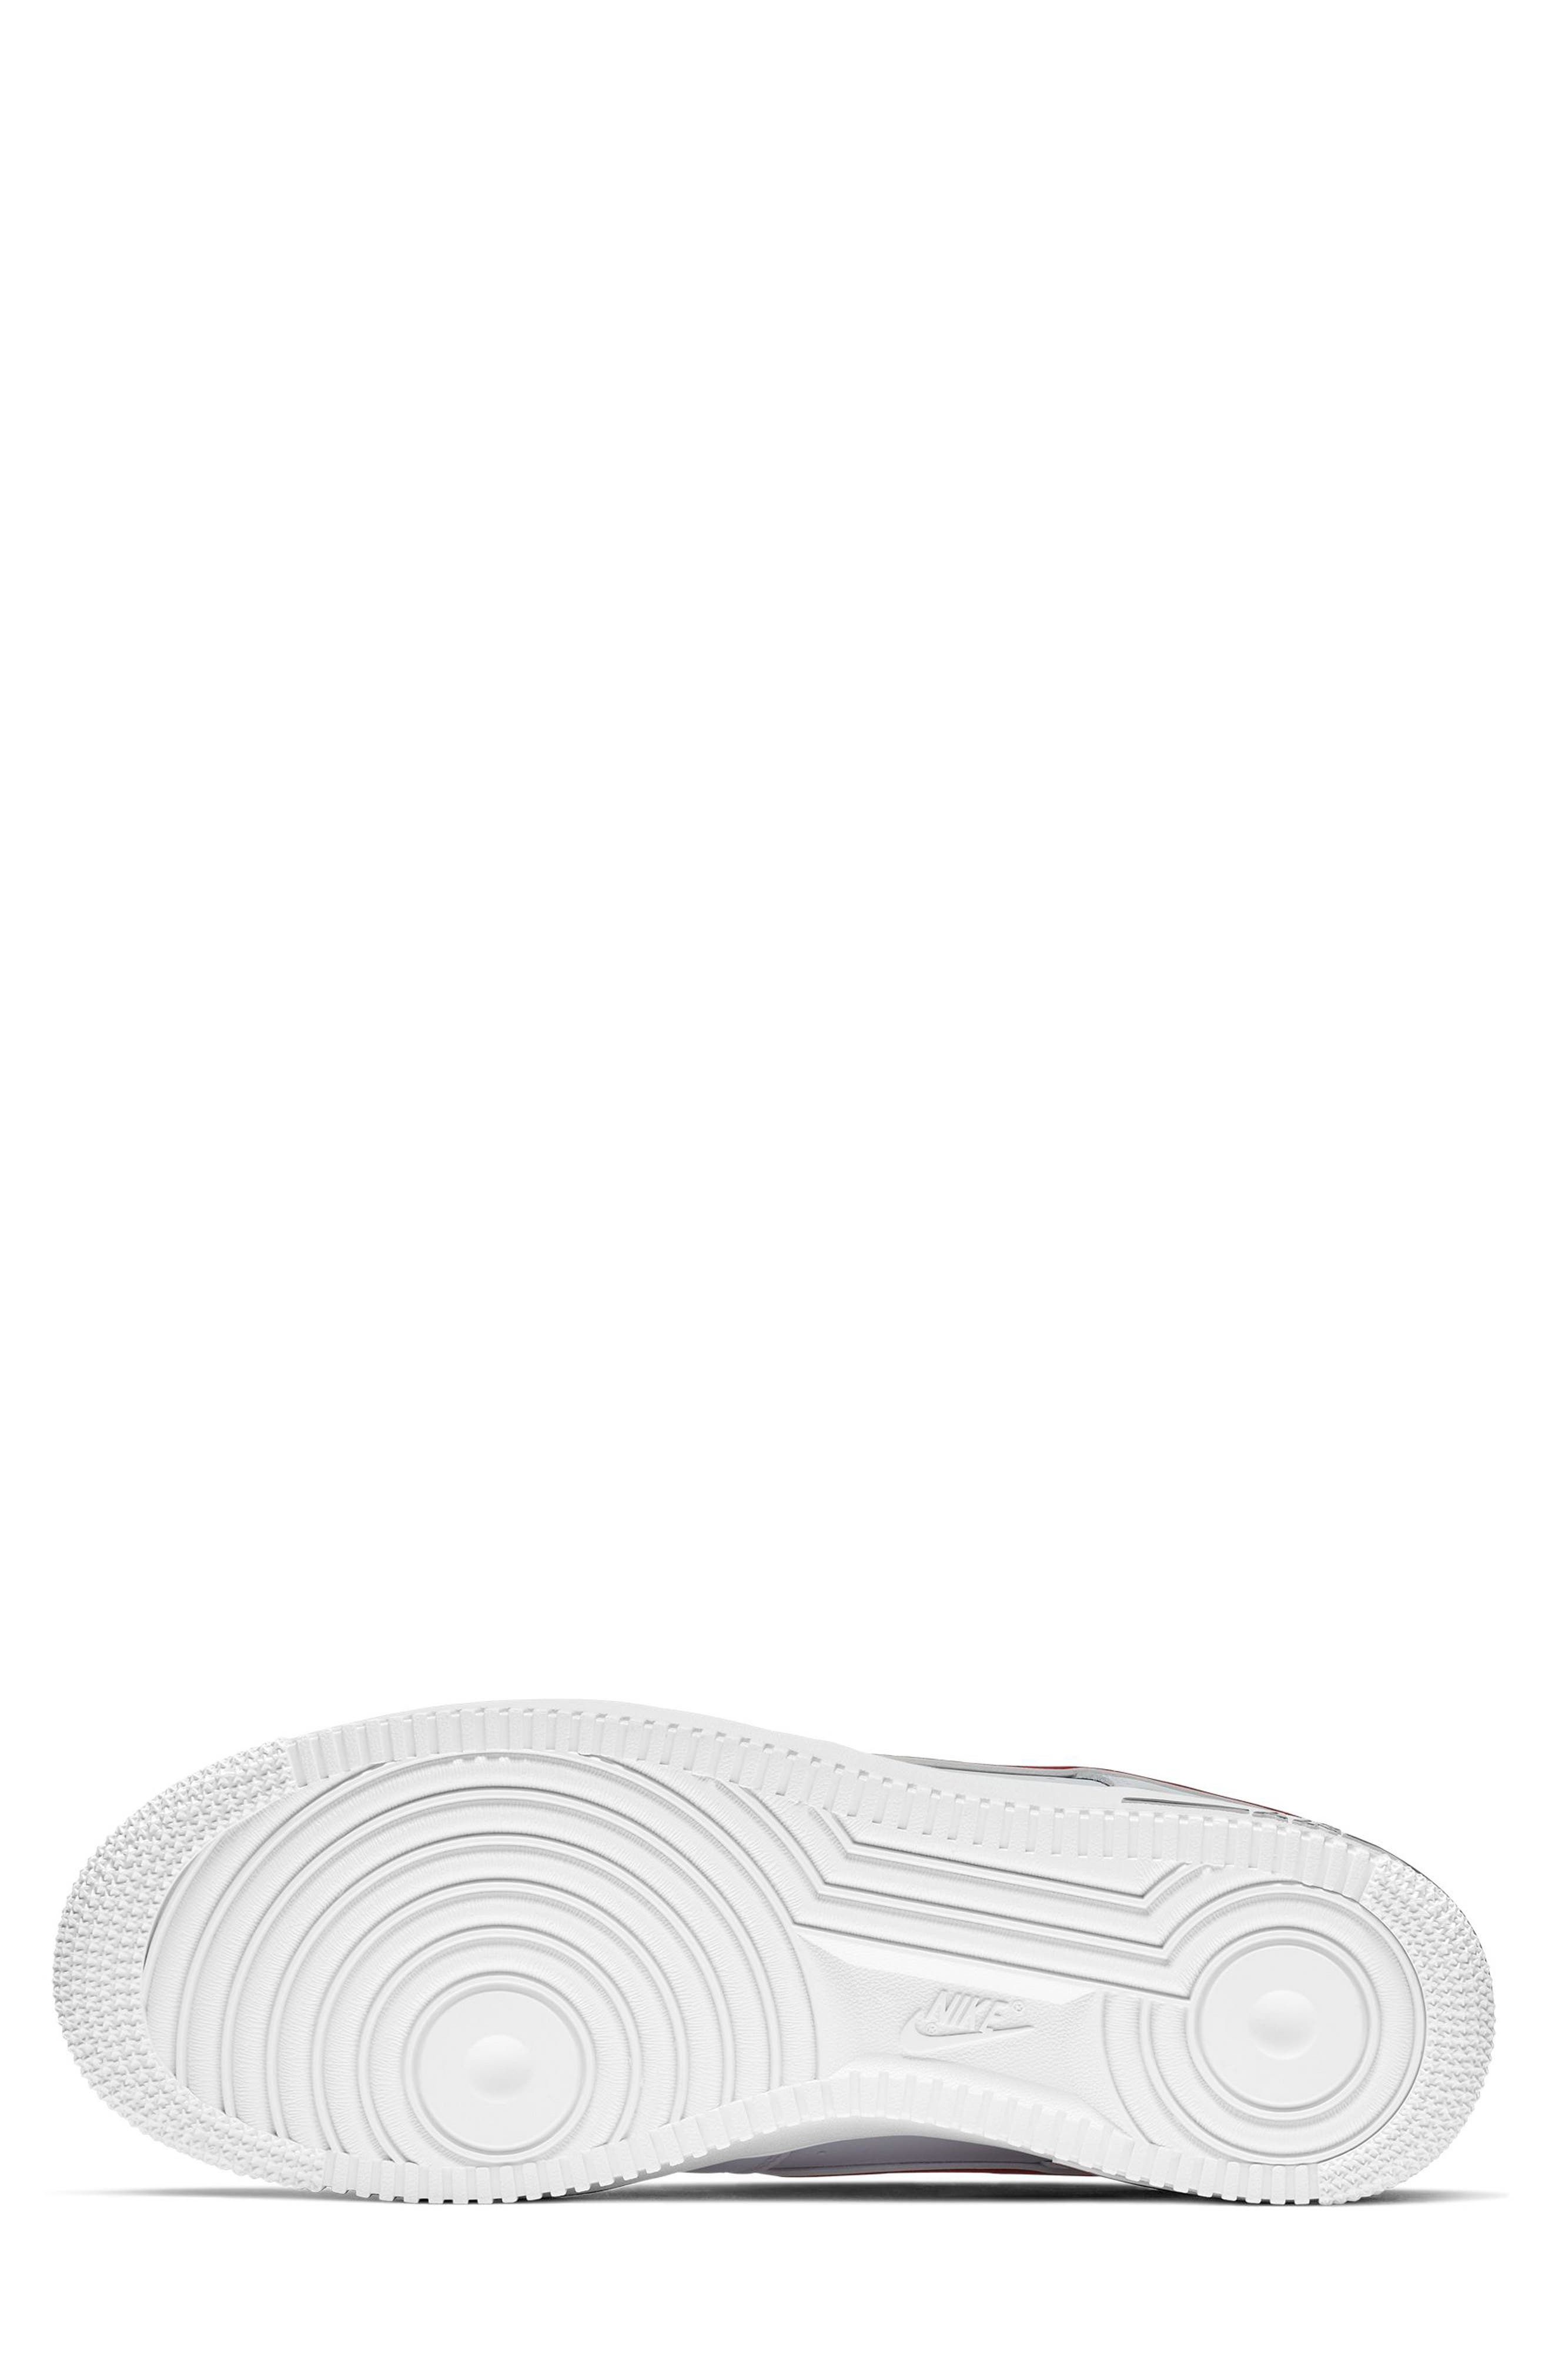 NIKE, Air Force 1 '07 3 Sneaker, Alternate thumbnail 4, color, WHITE/ GYM RED